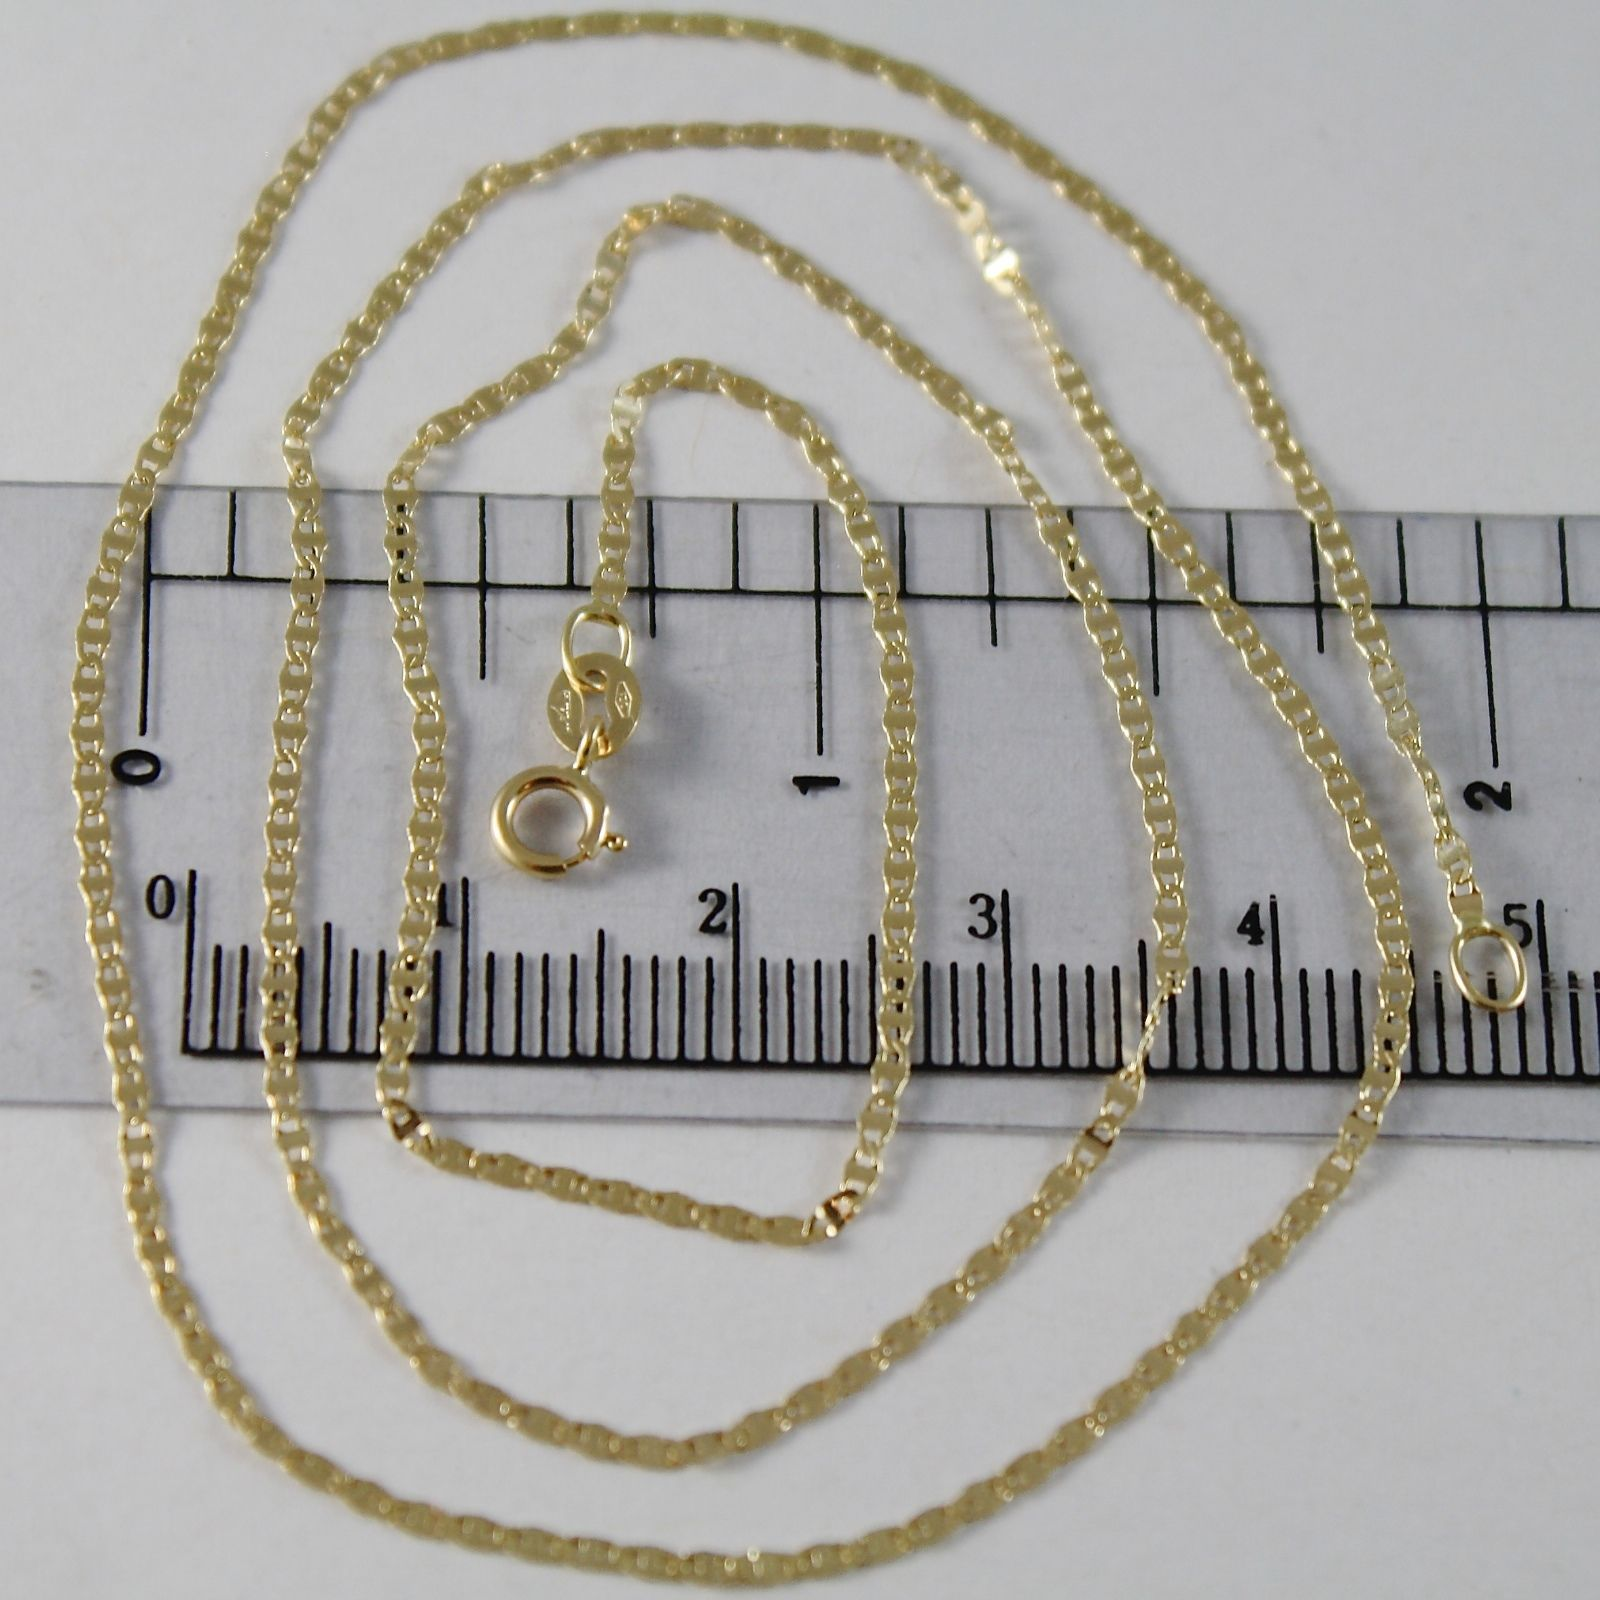 18K YELLOW GOLD CHAIN MINI OVAL FLAT MESH 1 MM WIDTH 17.70 INCHES MADE IN ITALY